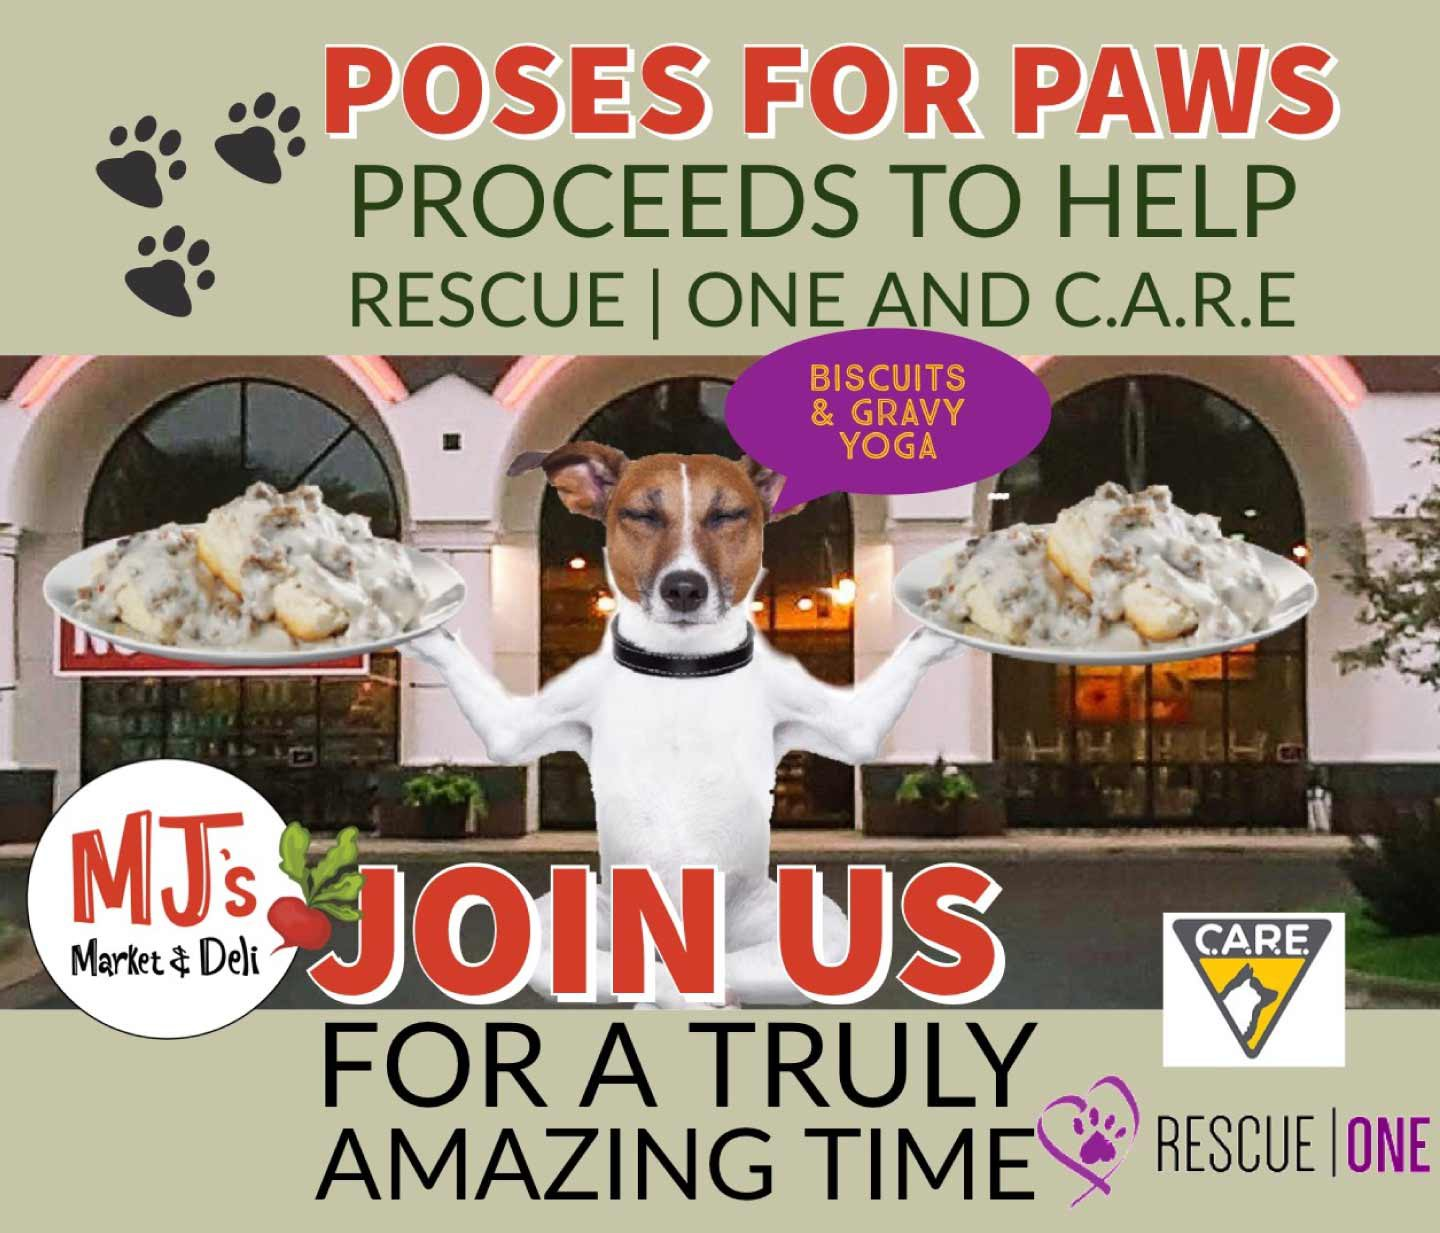 Poses for Paws in Springfield, MO